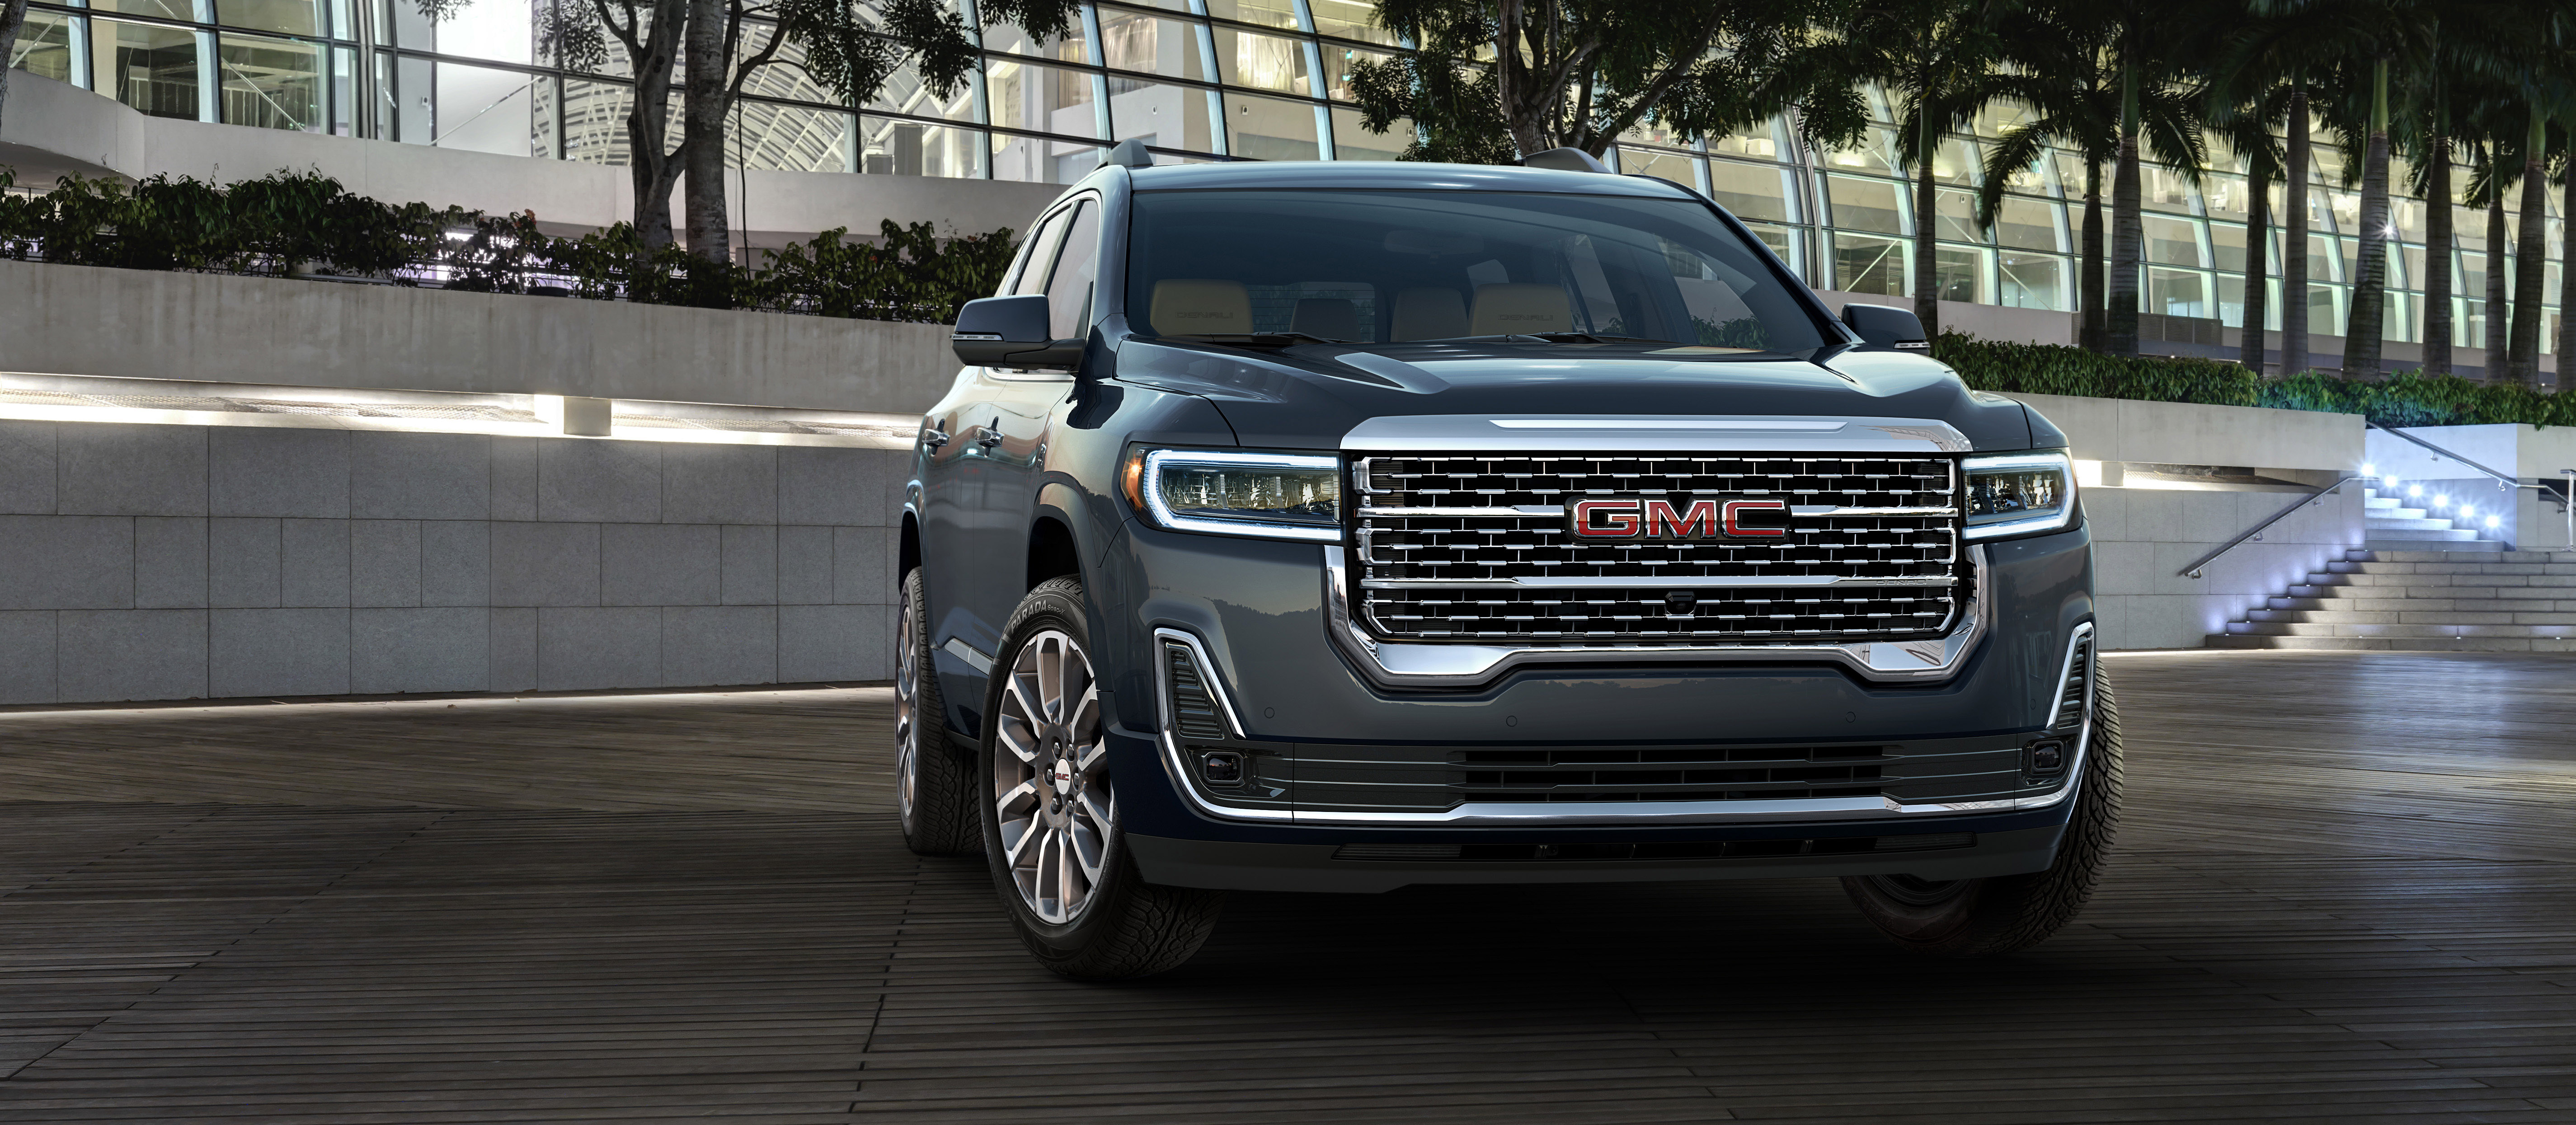 39 All New 2020 Gmc Yukon Xl Slt Release by 2020 Gmc Yukon Xl Slt